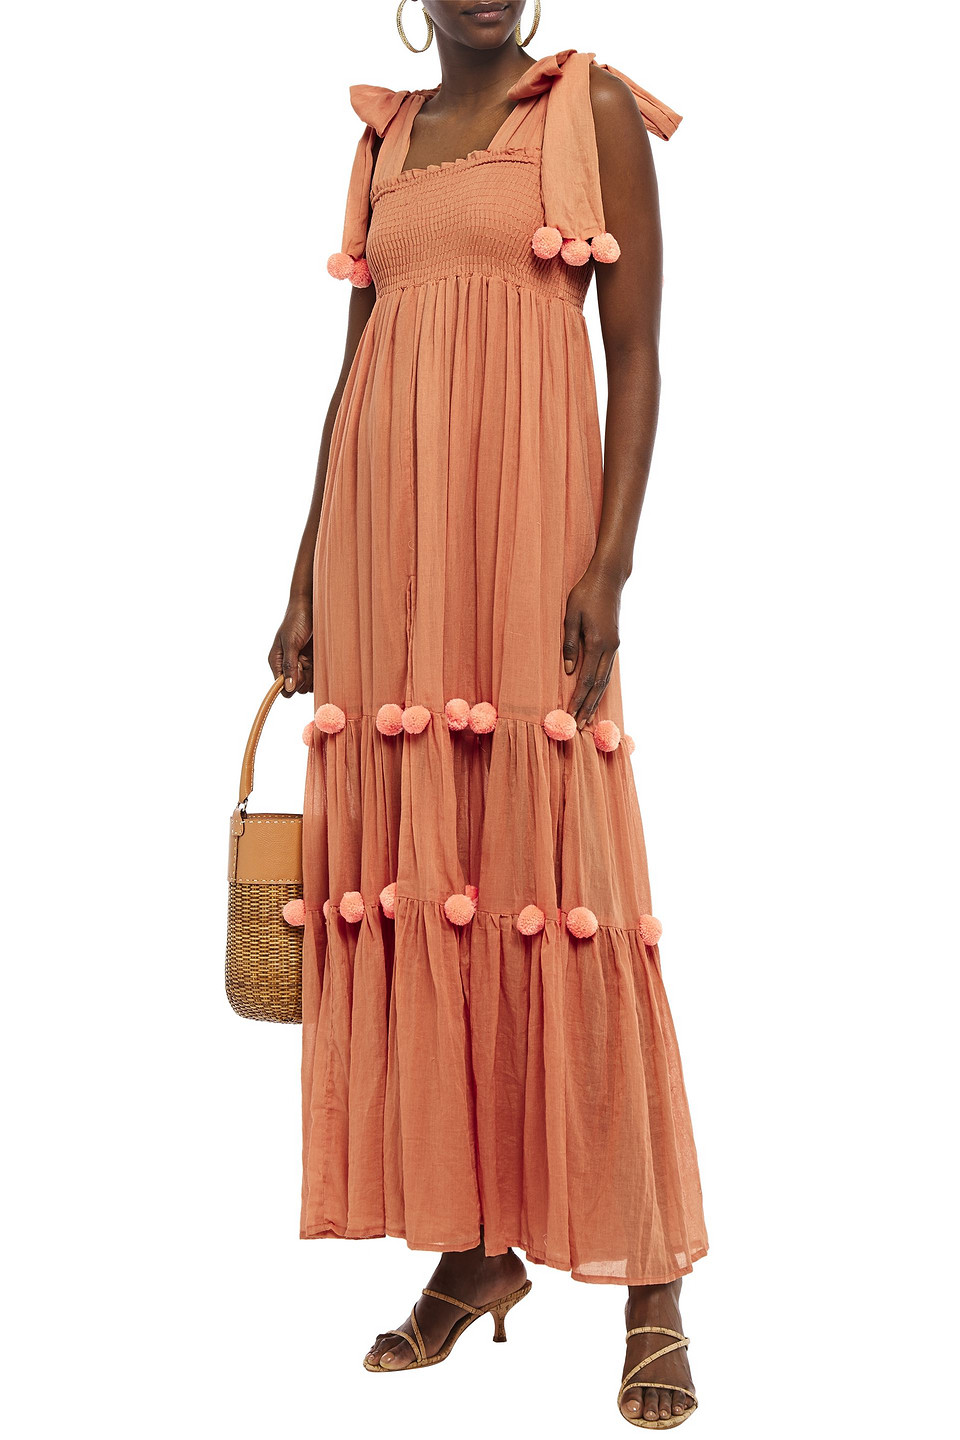 Sundress | Sundress Woman Pippa Pompom-embellished Smocked Cotton Maxi Dress Peach | Clouty